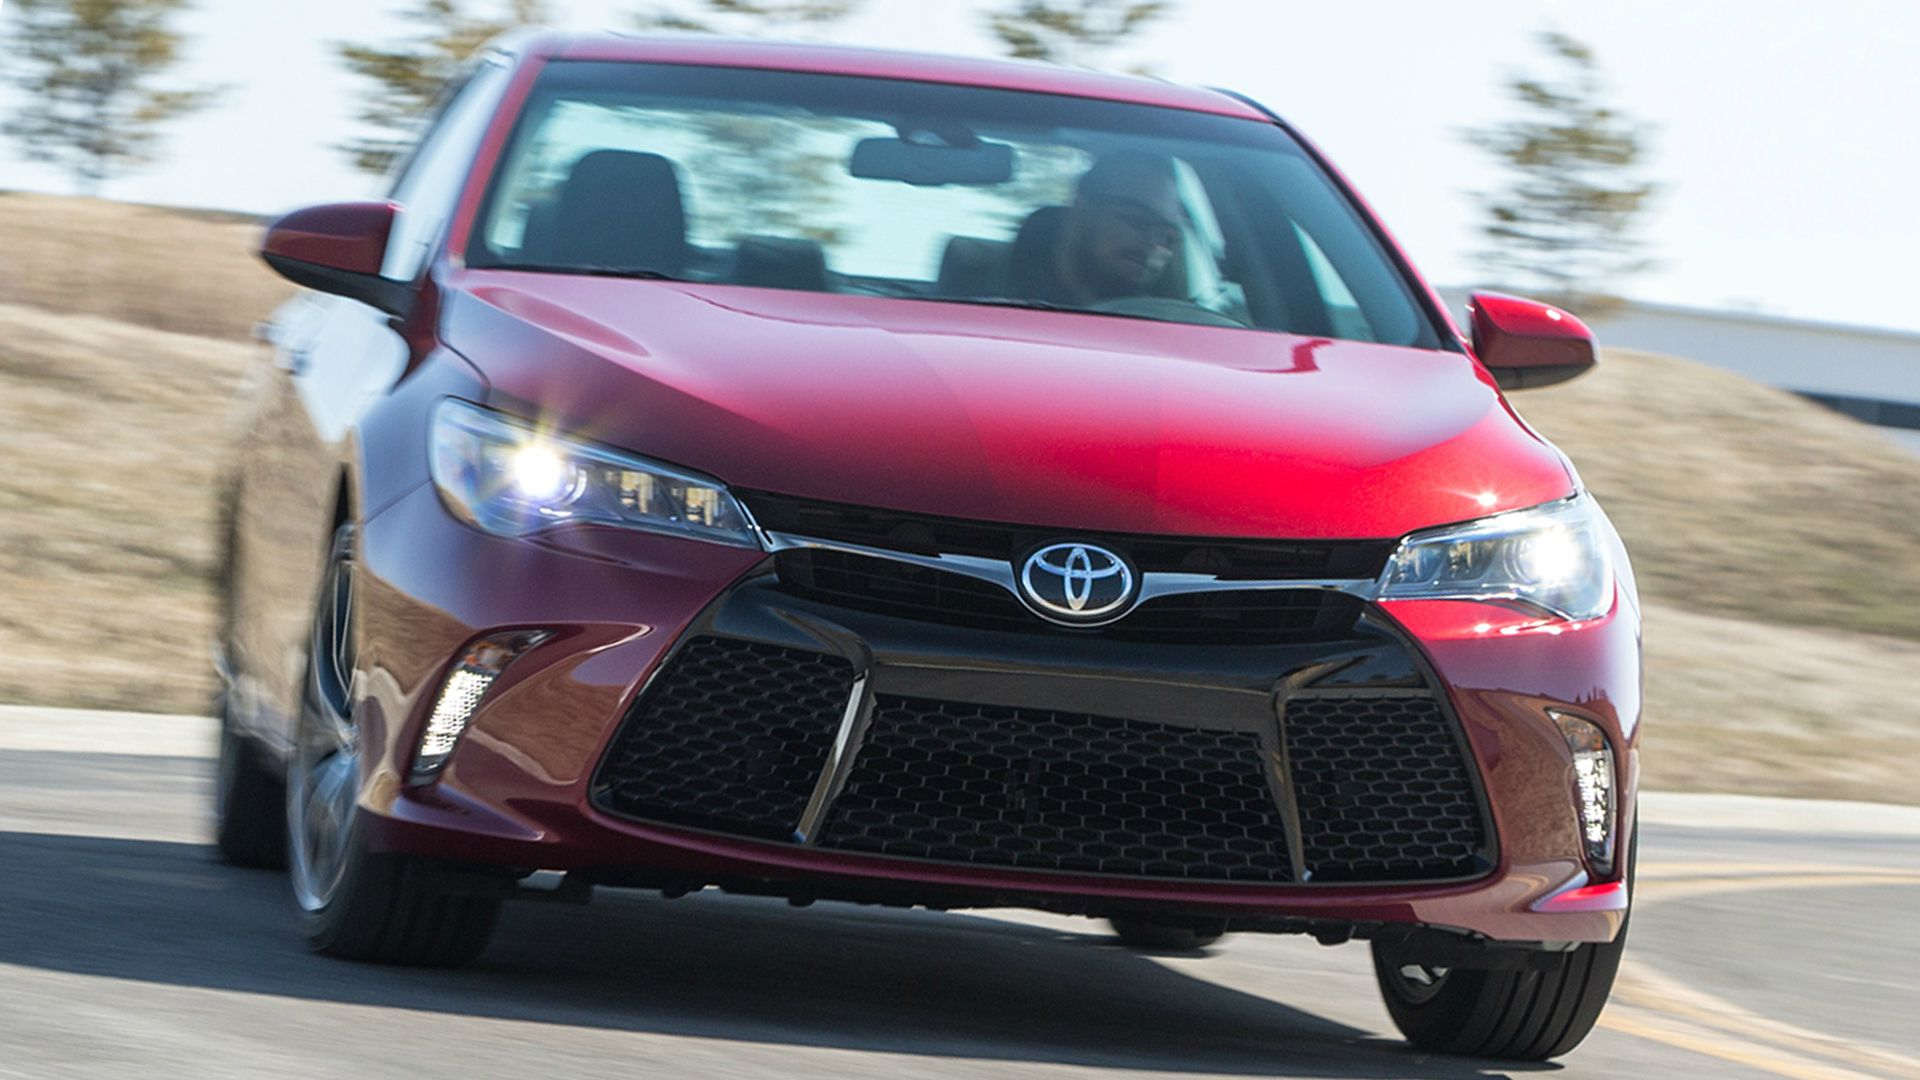 New 2019 Toyota Camry Hybrid Redesign (avec images)